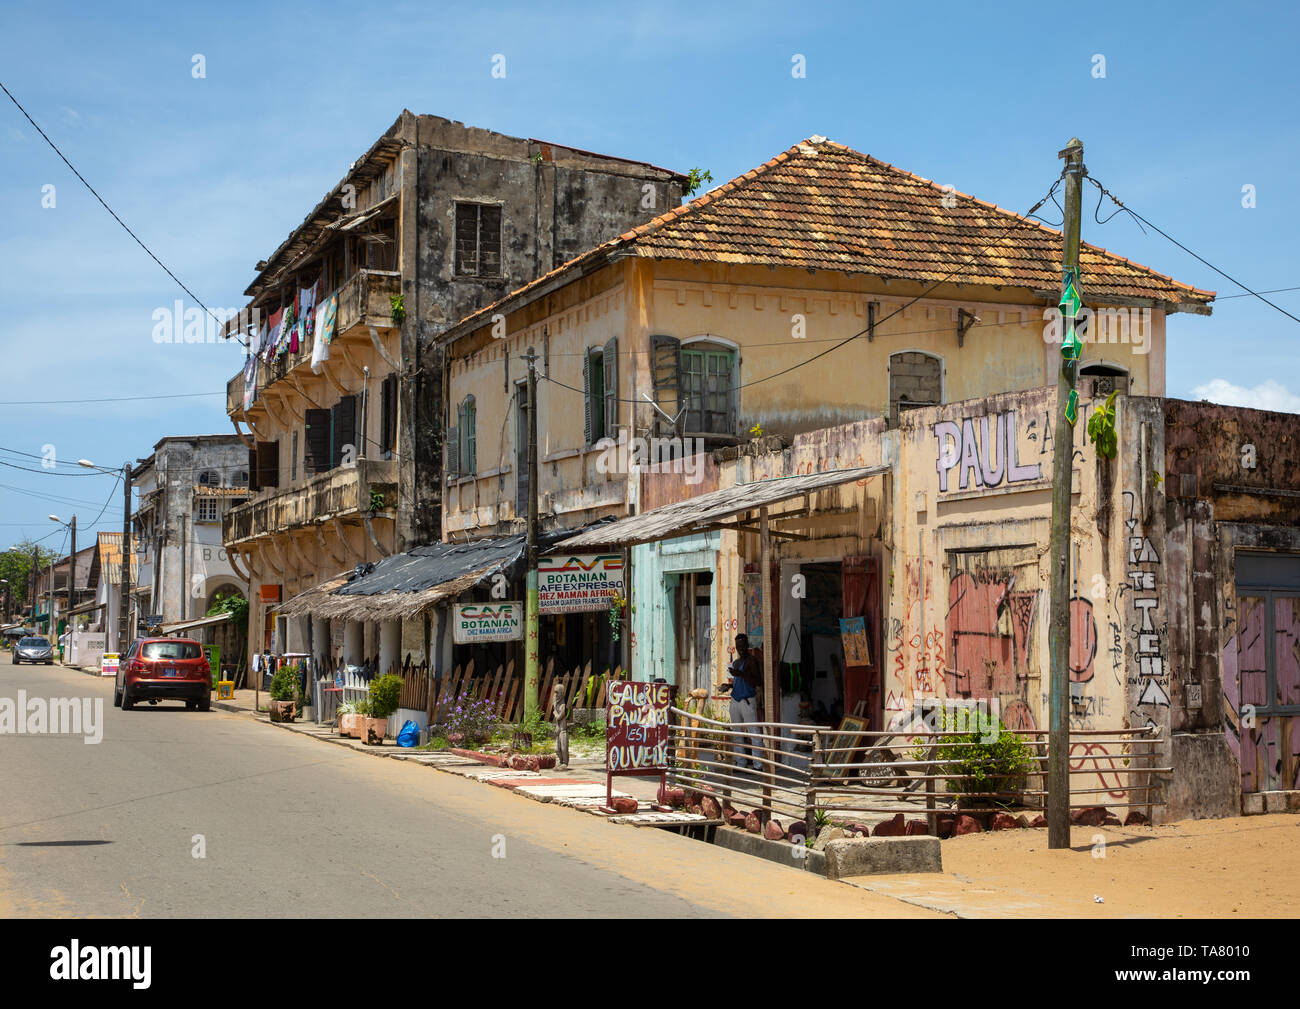 Old french colonial building in the UNESCO world heritage area, Sud-Comoé, Grand-Bassam, Ivory Coast Stock Photo